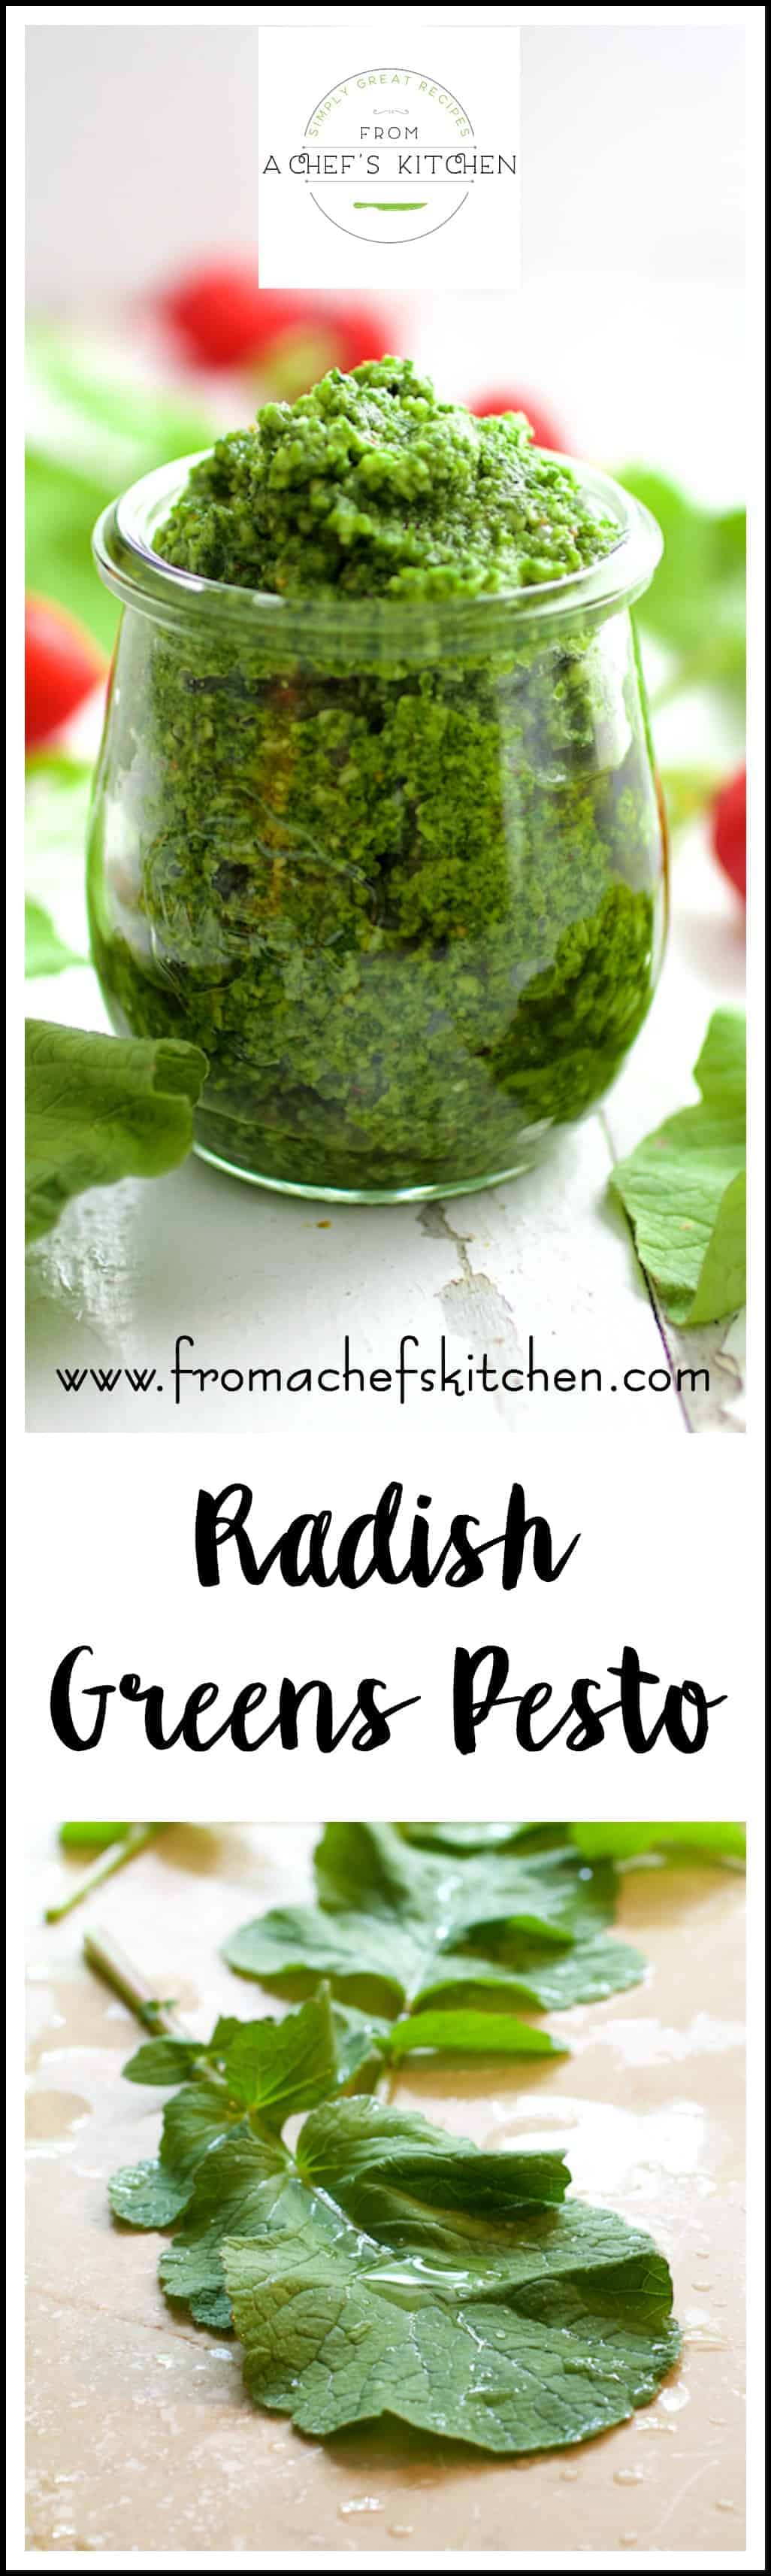 Pungent, peppery radish greens make perfect pesto and pack a nutritional punch!